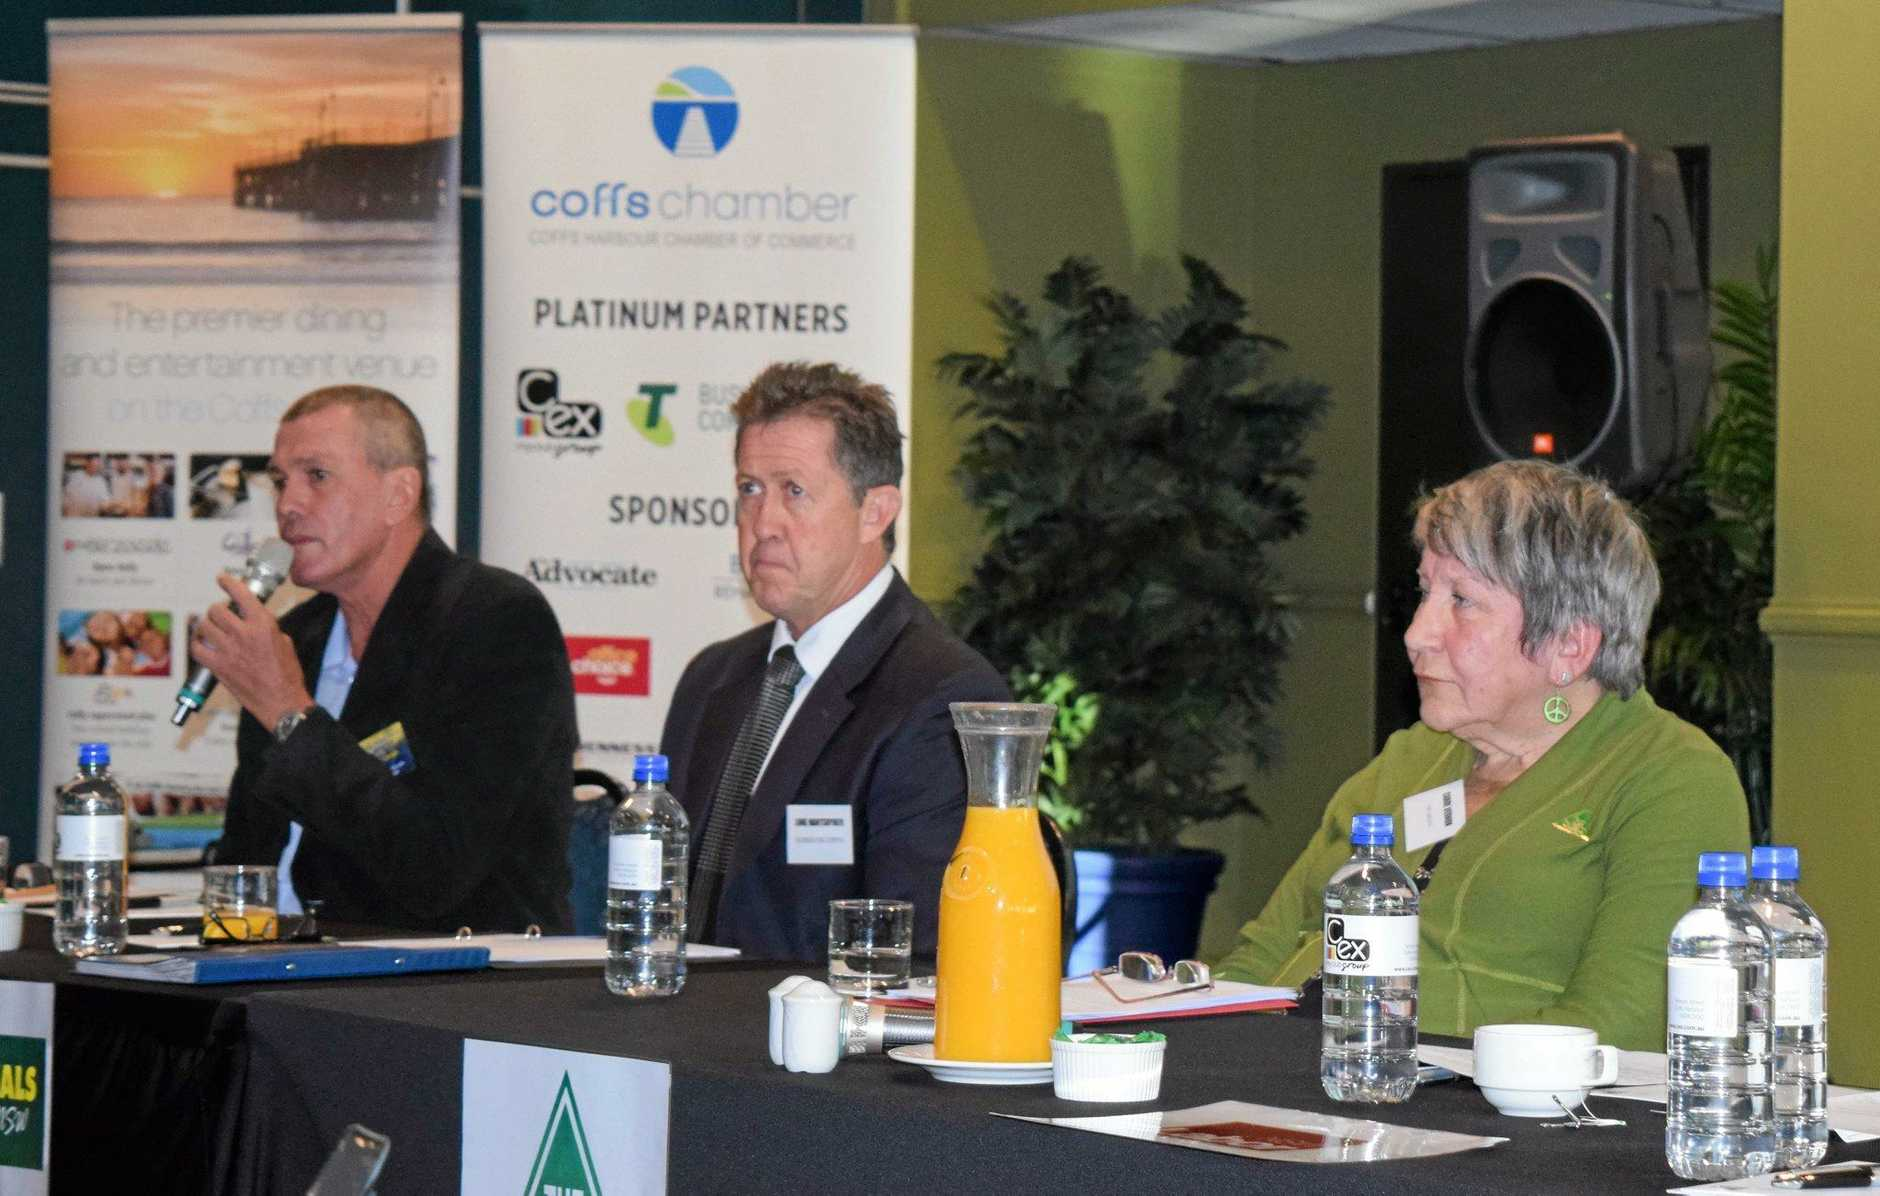 GAME ON: Cowper candidates Michael Gough, incumbent Luke Hartsuyker and Carol Vernon spoke on a range of key issues at the Coffs Harbour Chamber of Commerce candidates forum.